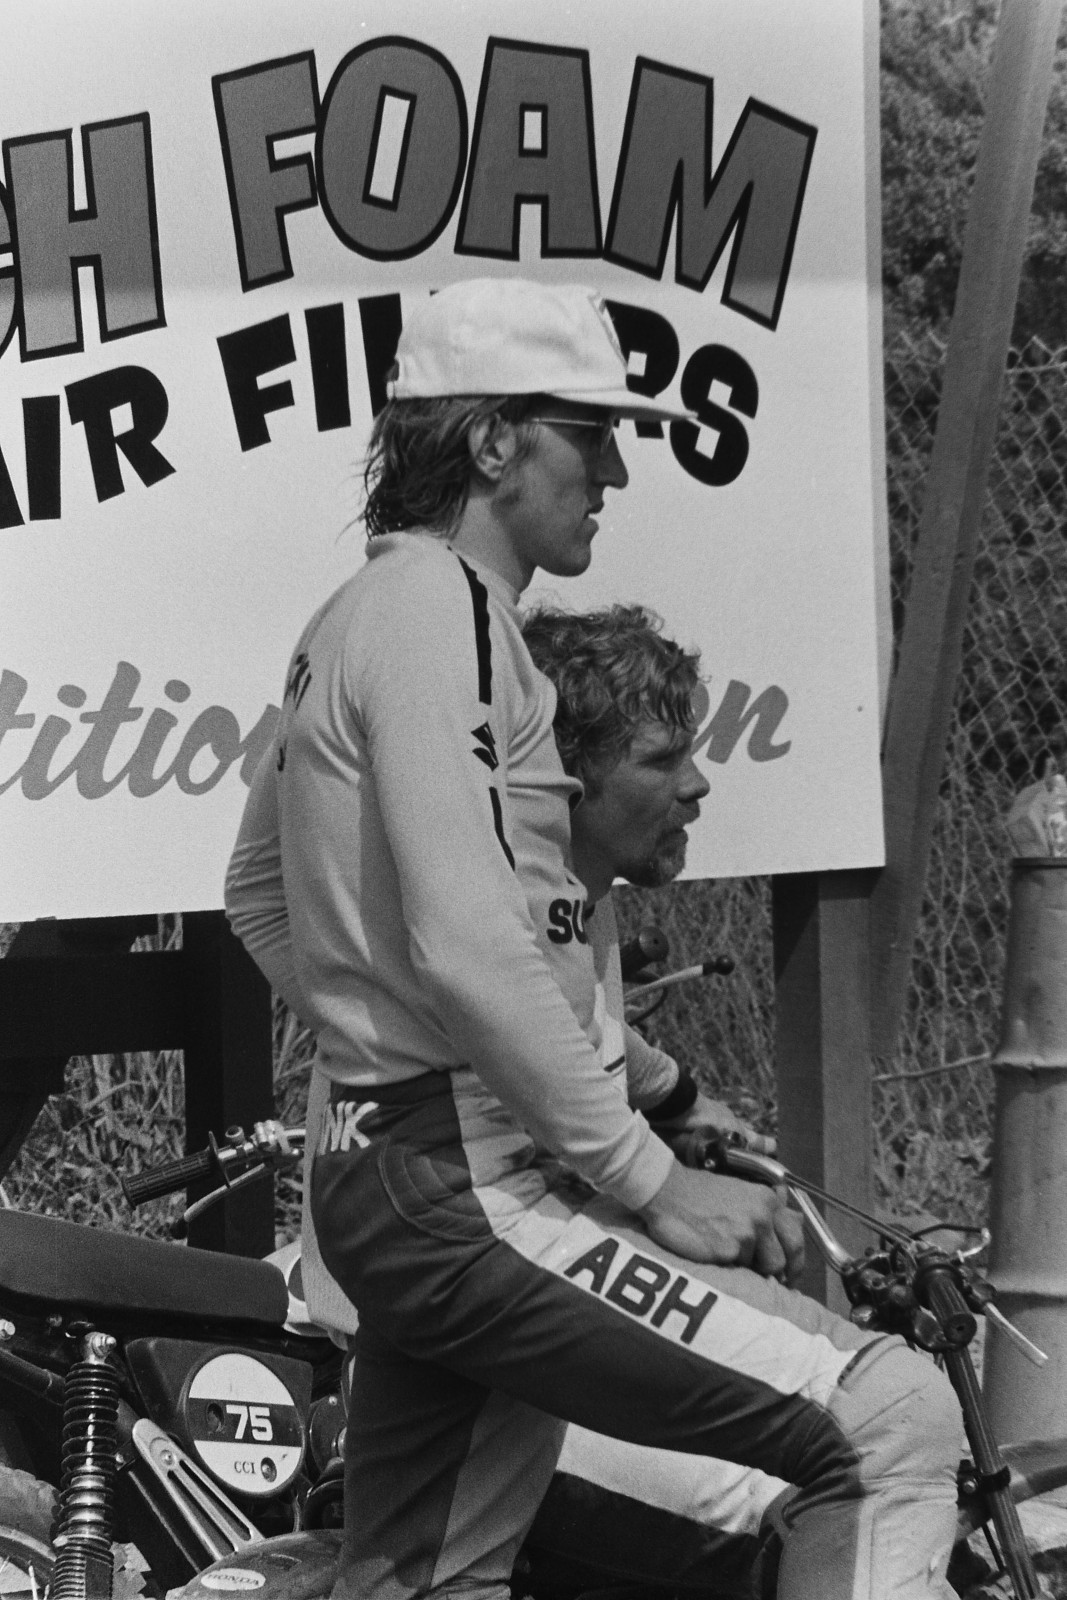 Wolsink and Mikkola during the riders meeting.